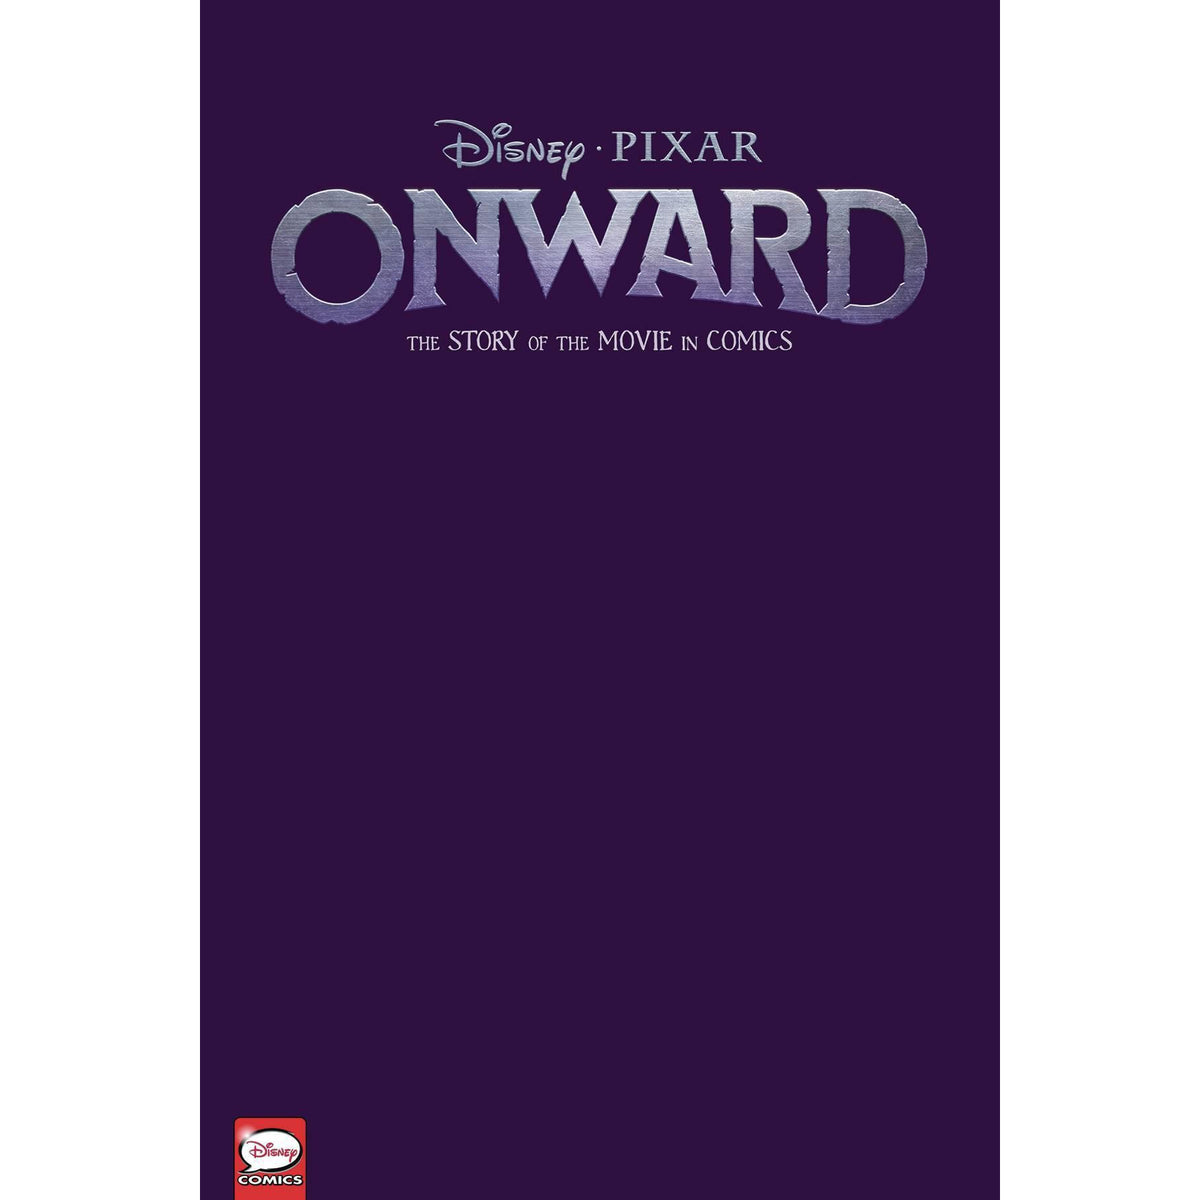 DISNEY - PIXAR ONWARD: STORY OF THE MOVIE IN COMICS